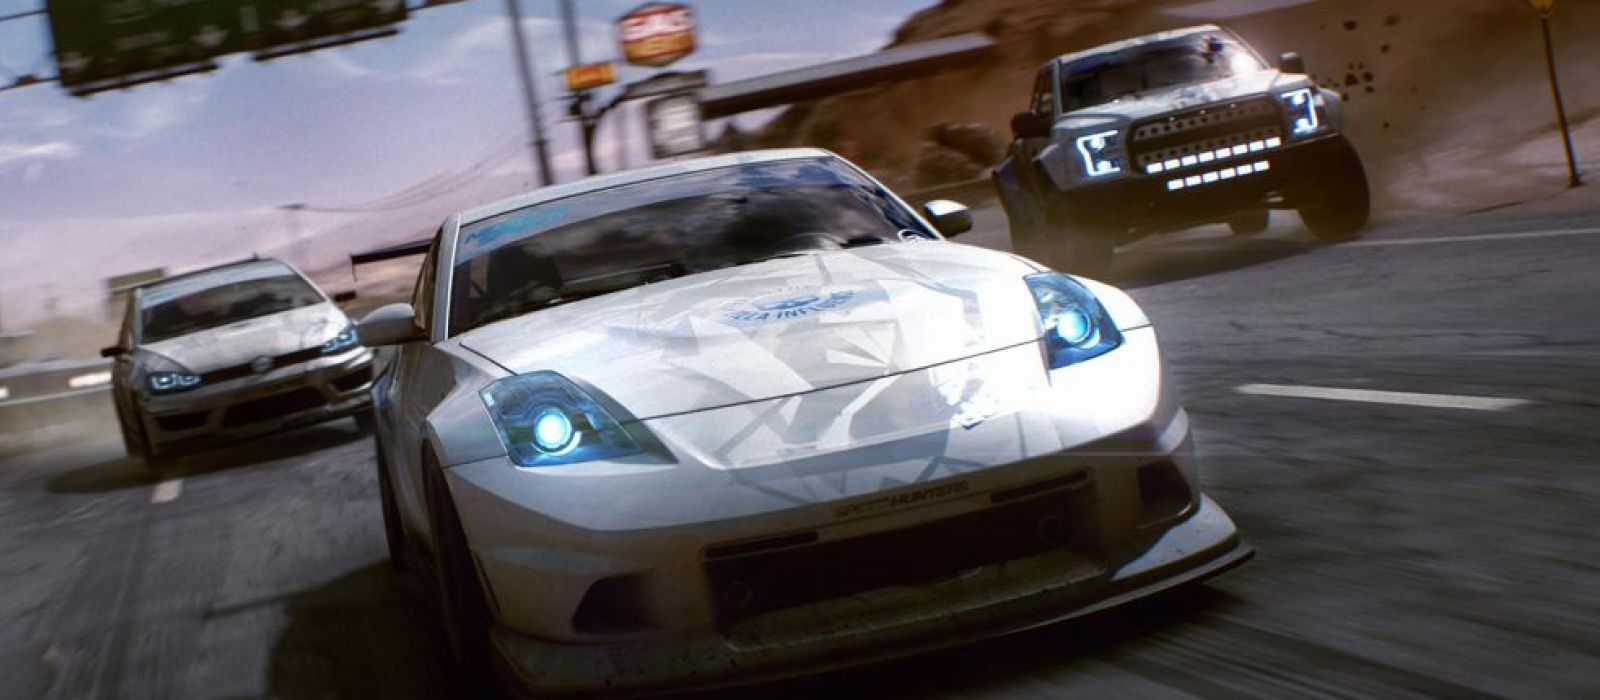 Вышел новый трейлер Need for Speed Payback — Welcome to Fortune Valley